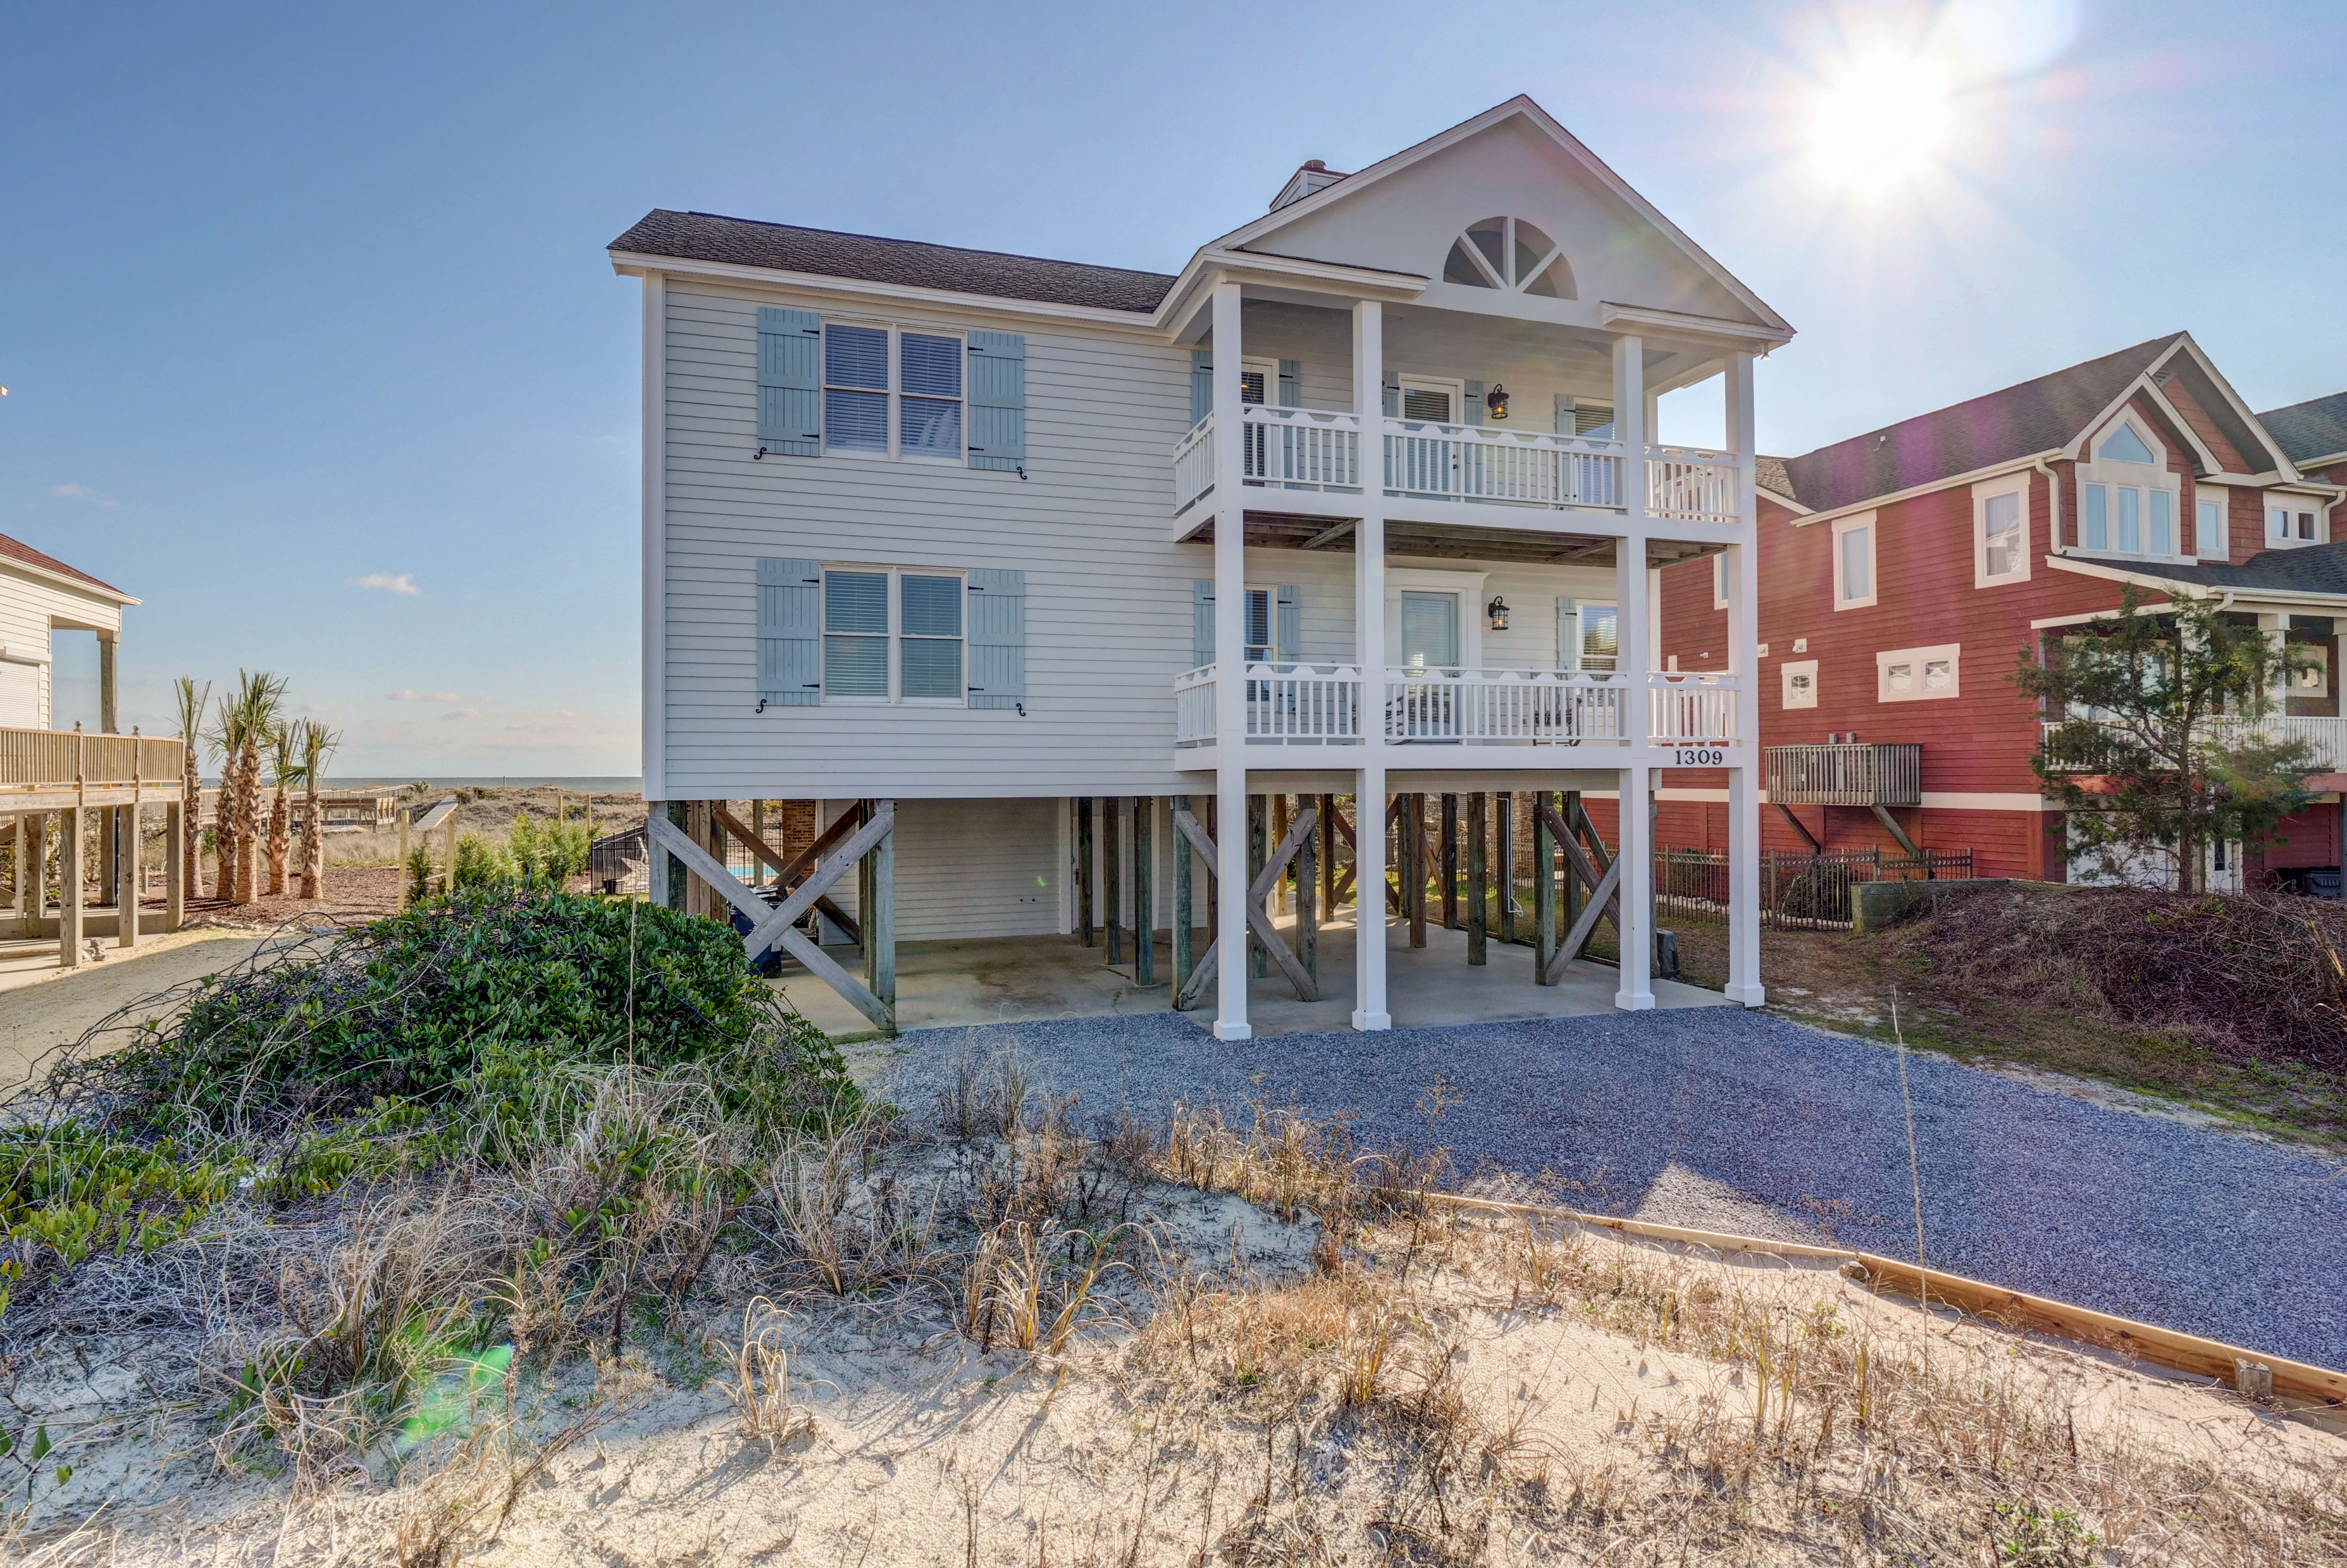 Single Family Home for sale in 1309 Ocean Blvd W, Holden Beach, NC ,28462